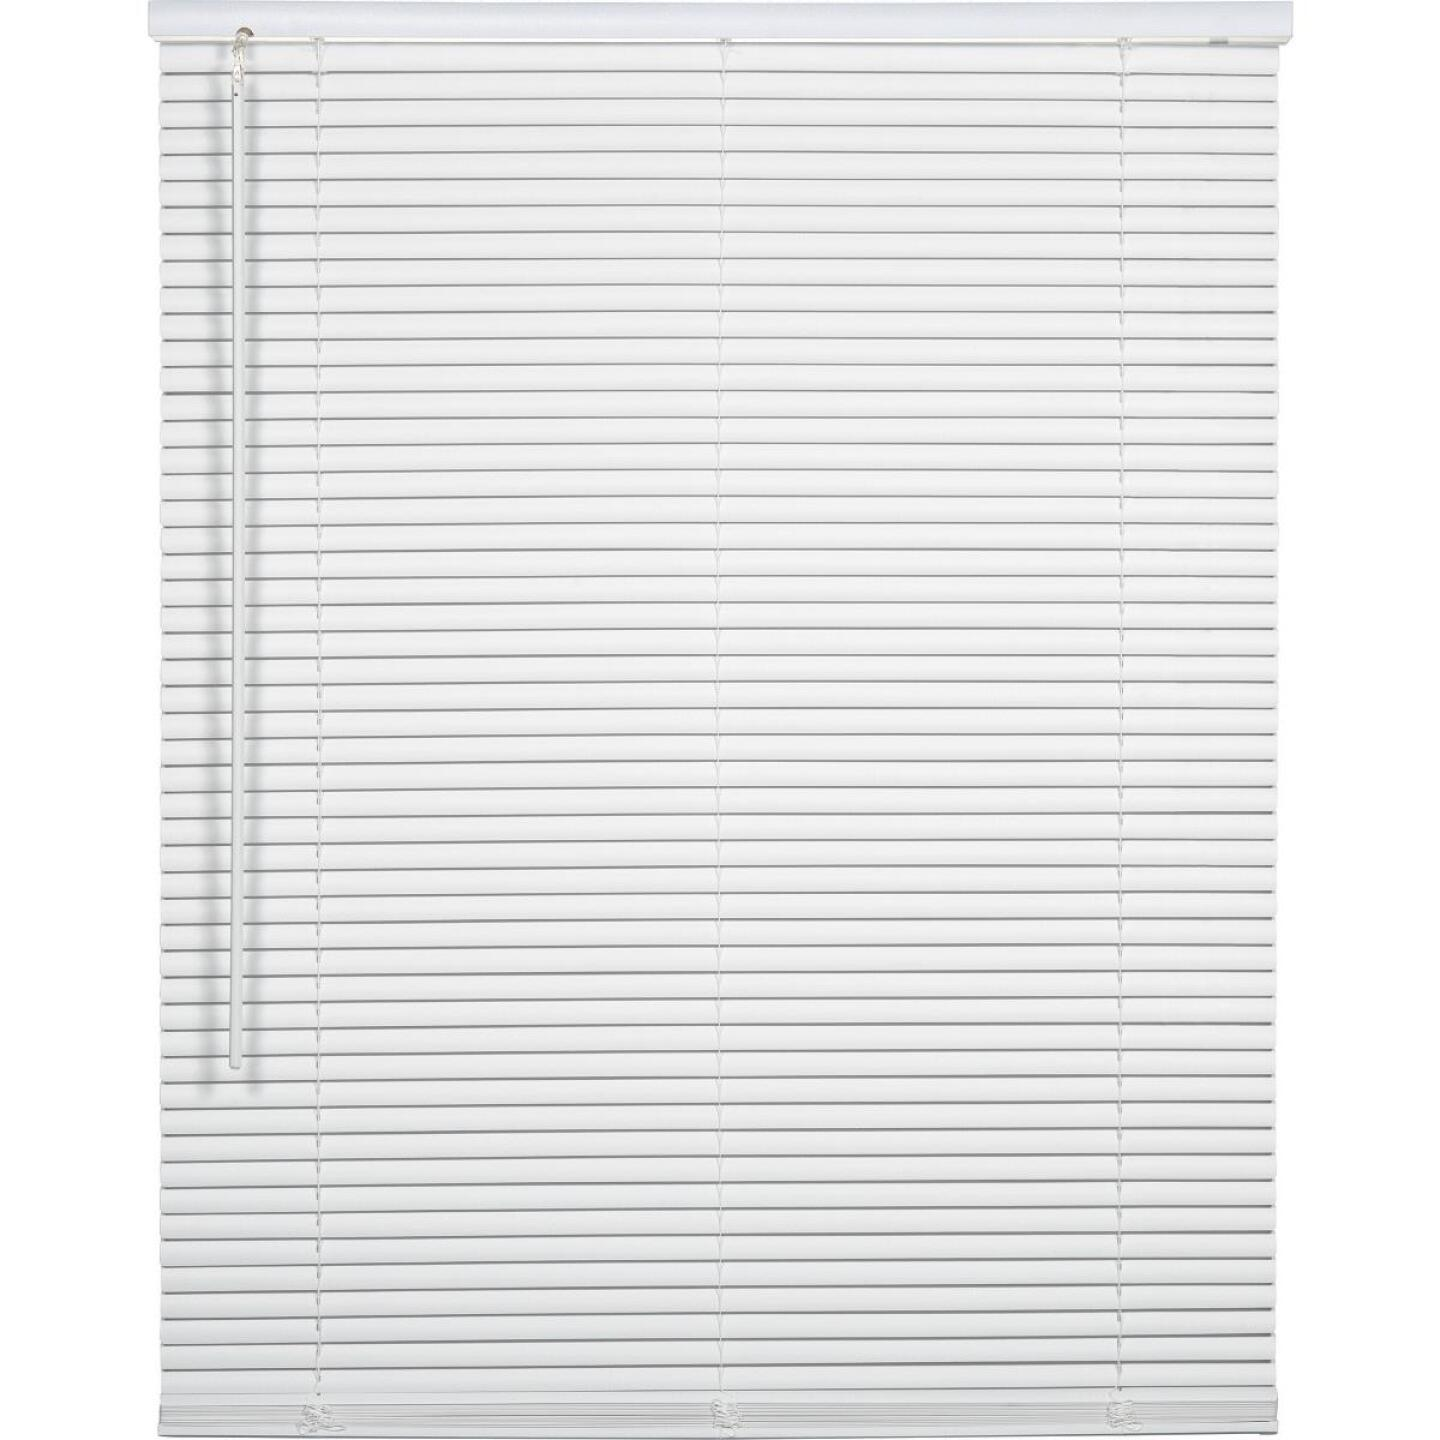 Home Impressions 43 In. x 72 In. x 1 In. White Vinyl Light Filtering Cordless Mini Blind Image 1